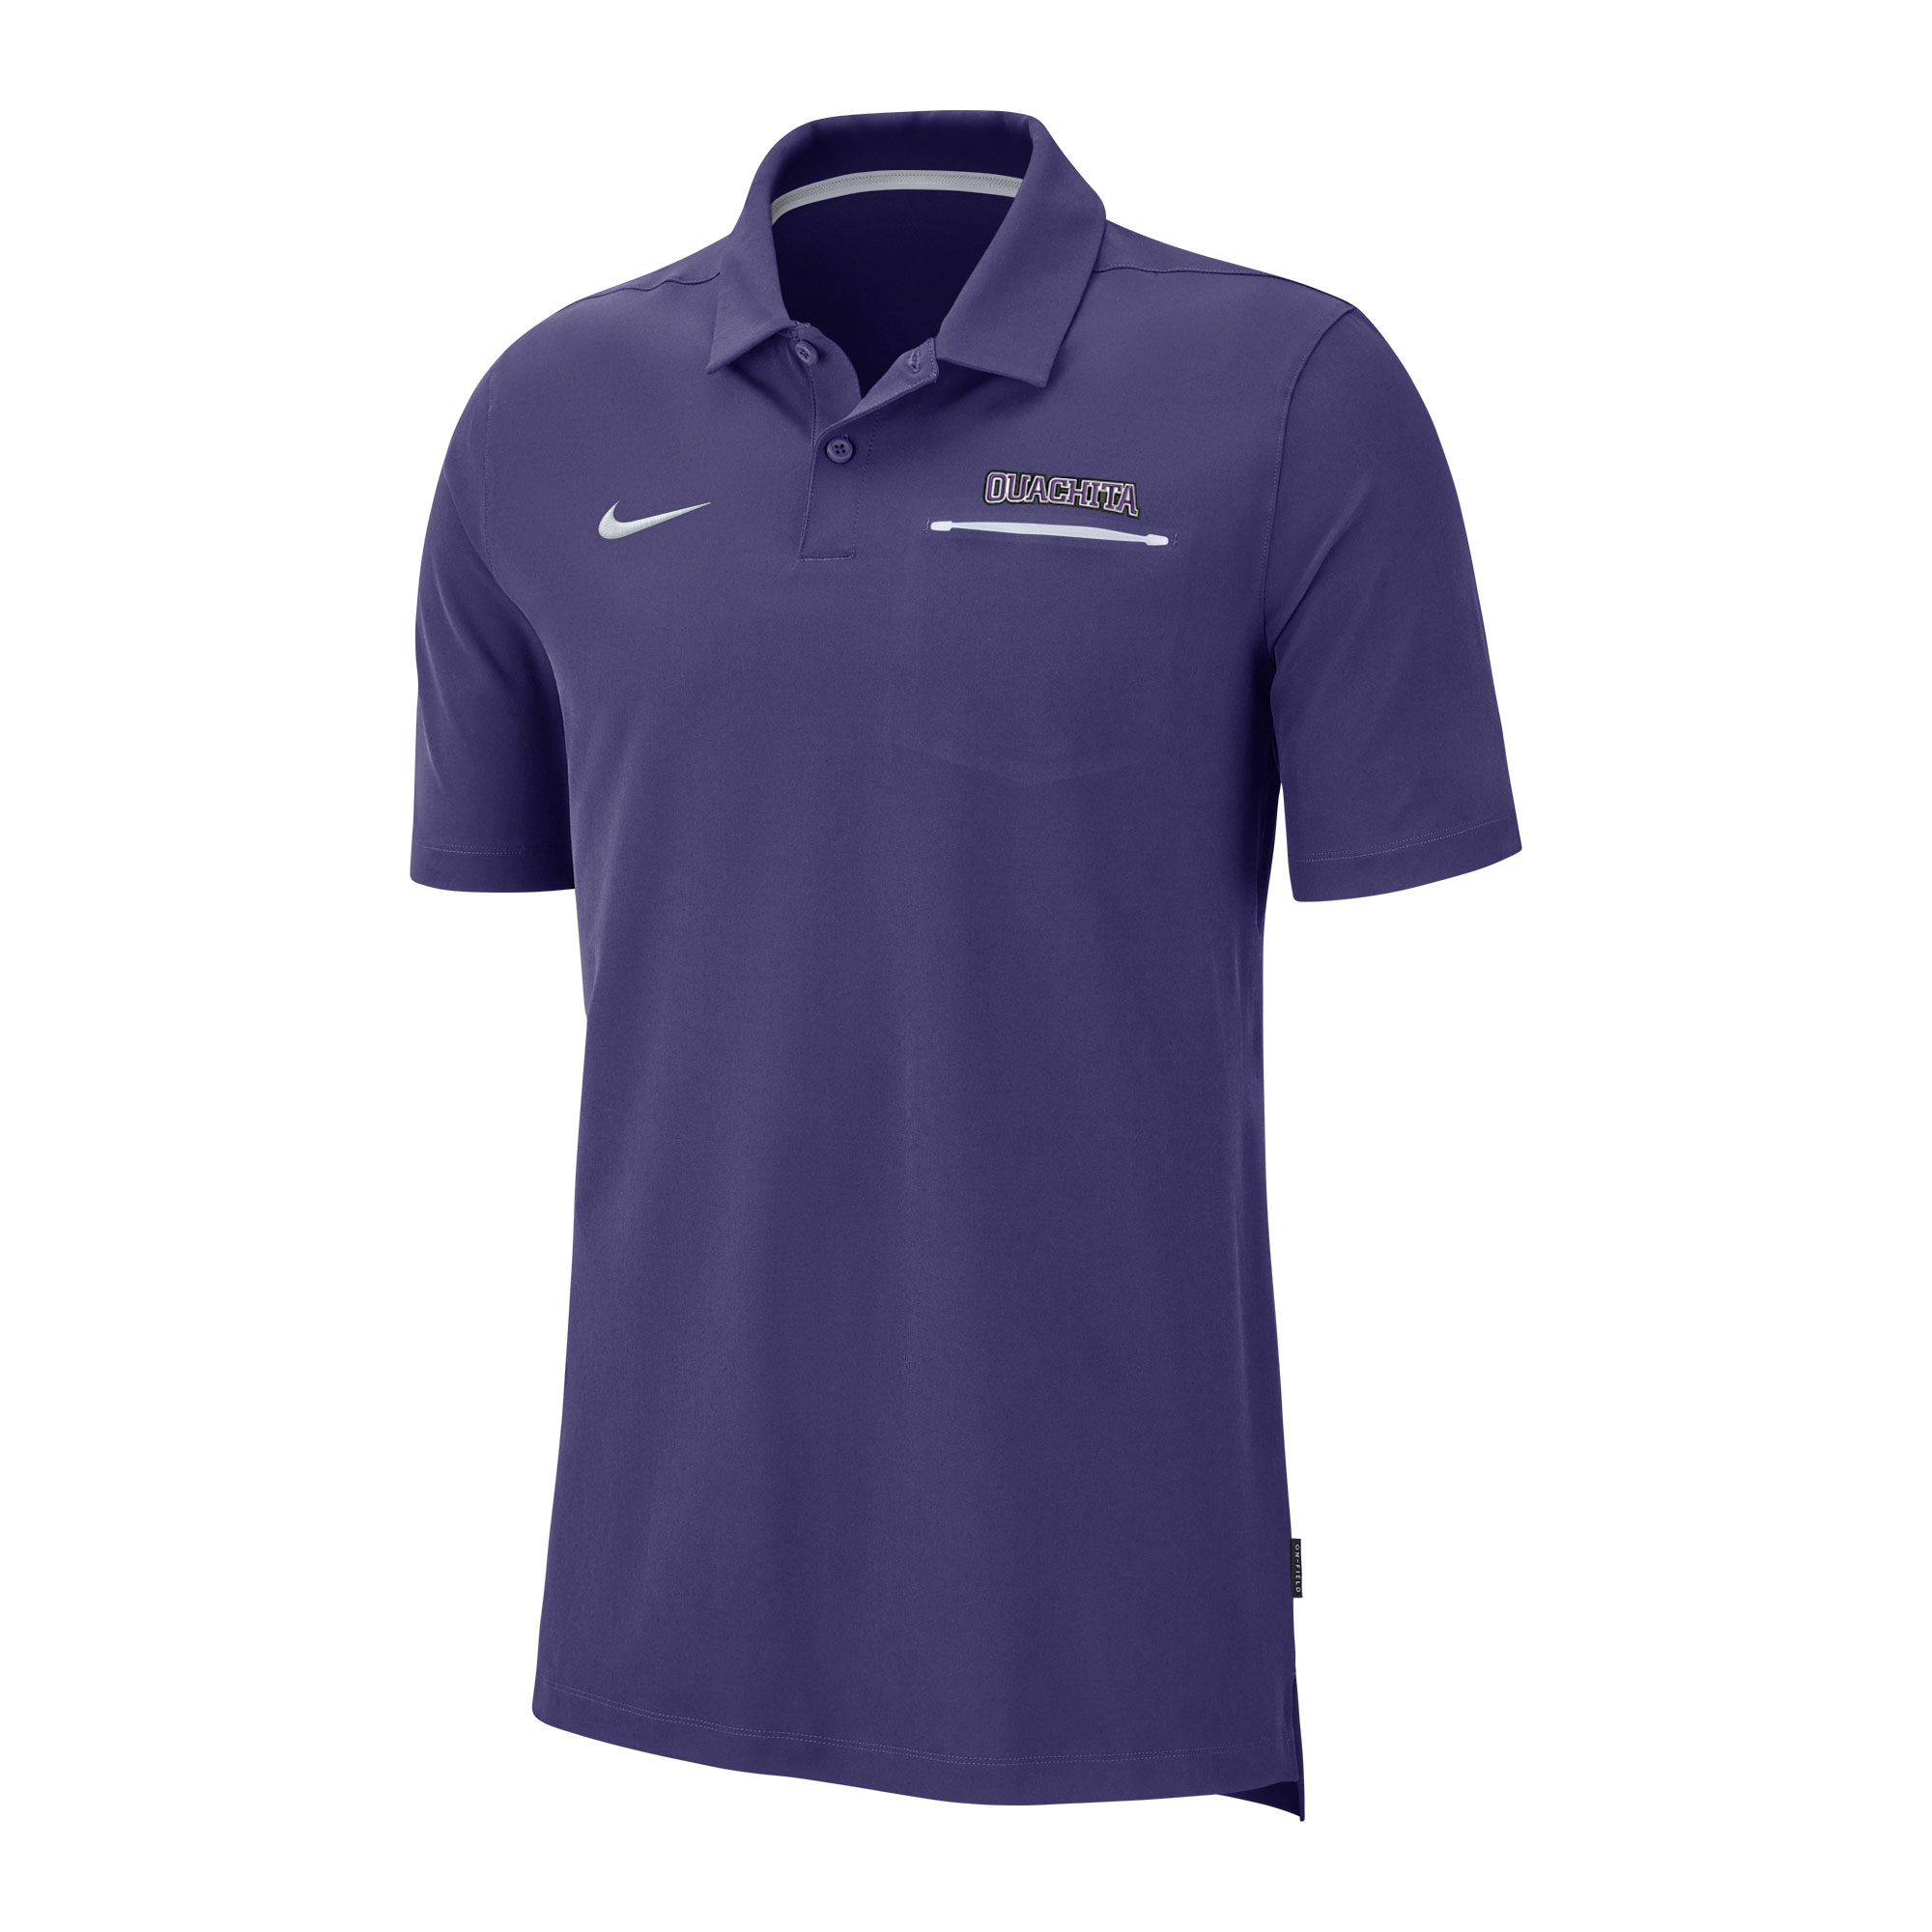 MEN'S NIKE ELITE COACH POLO